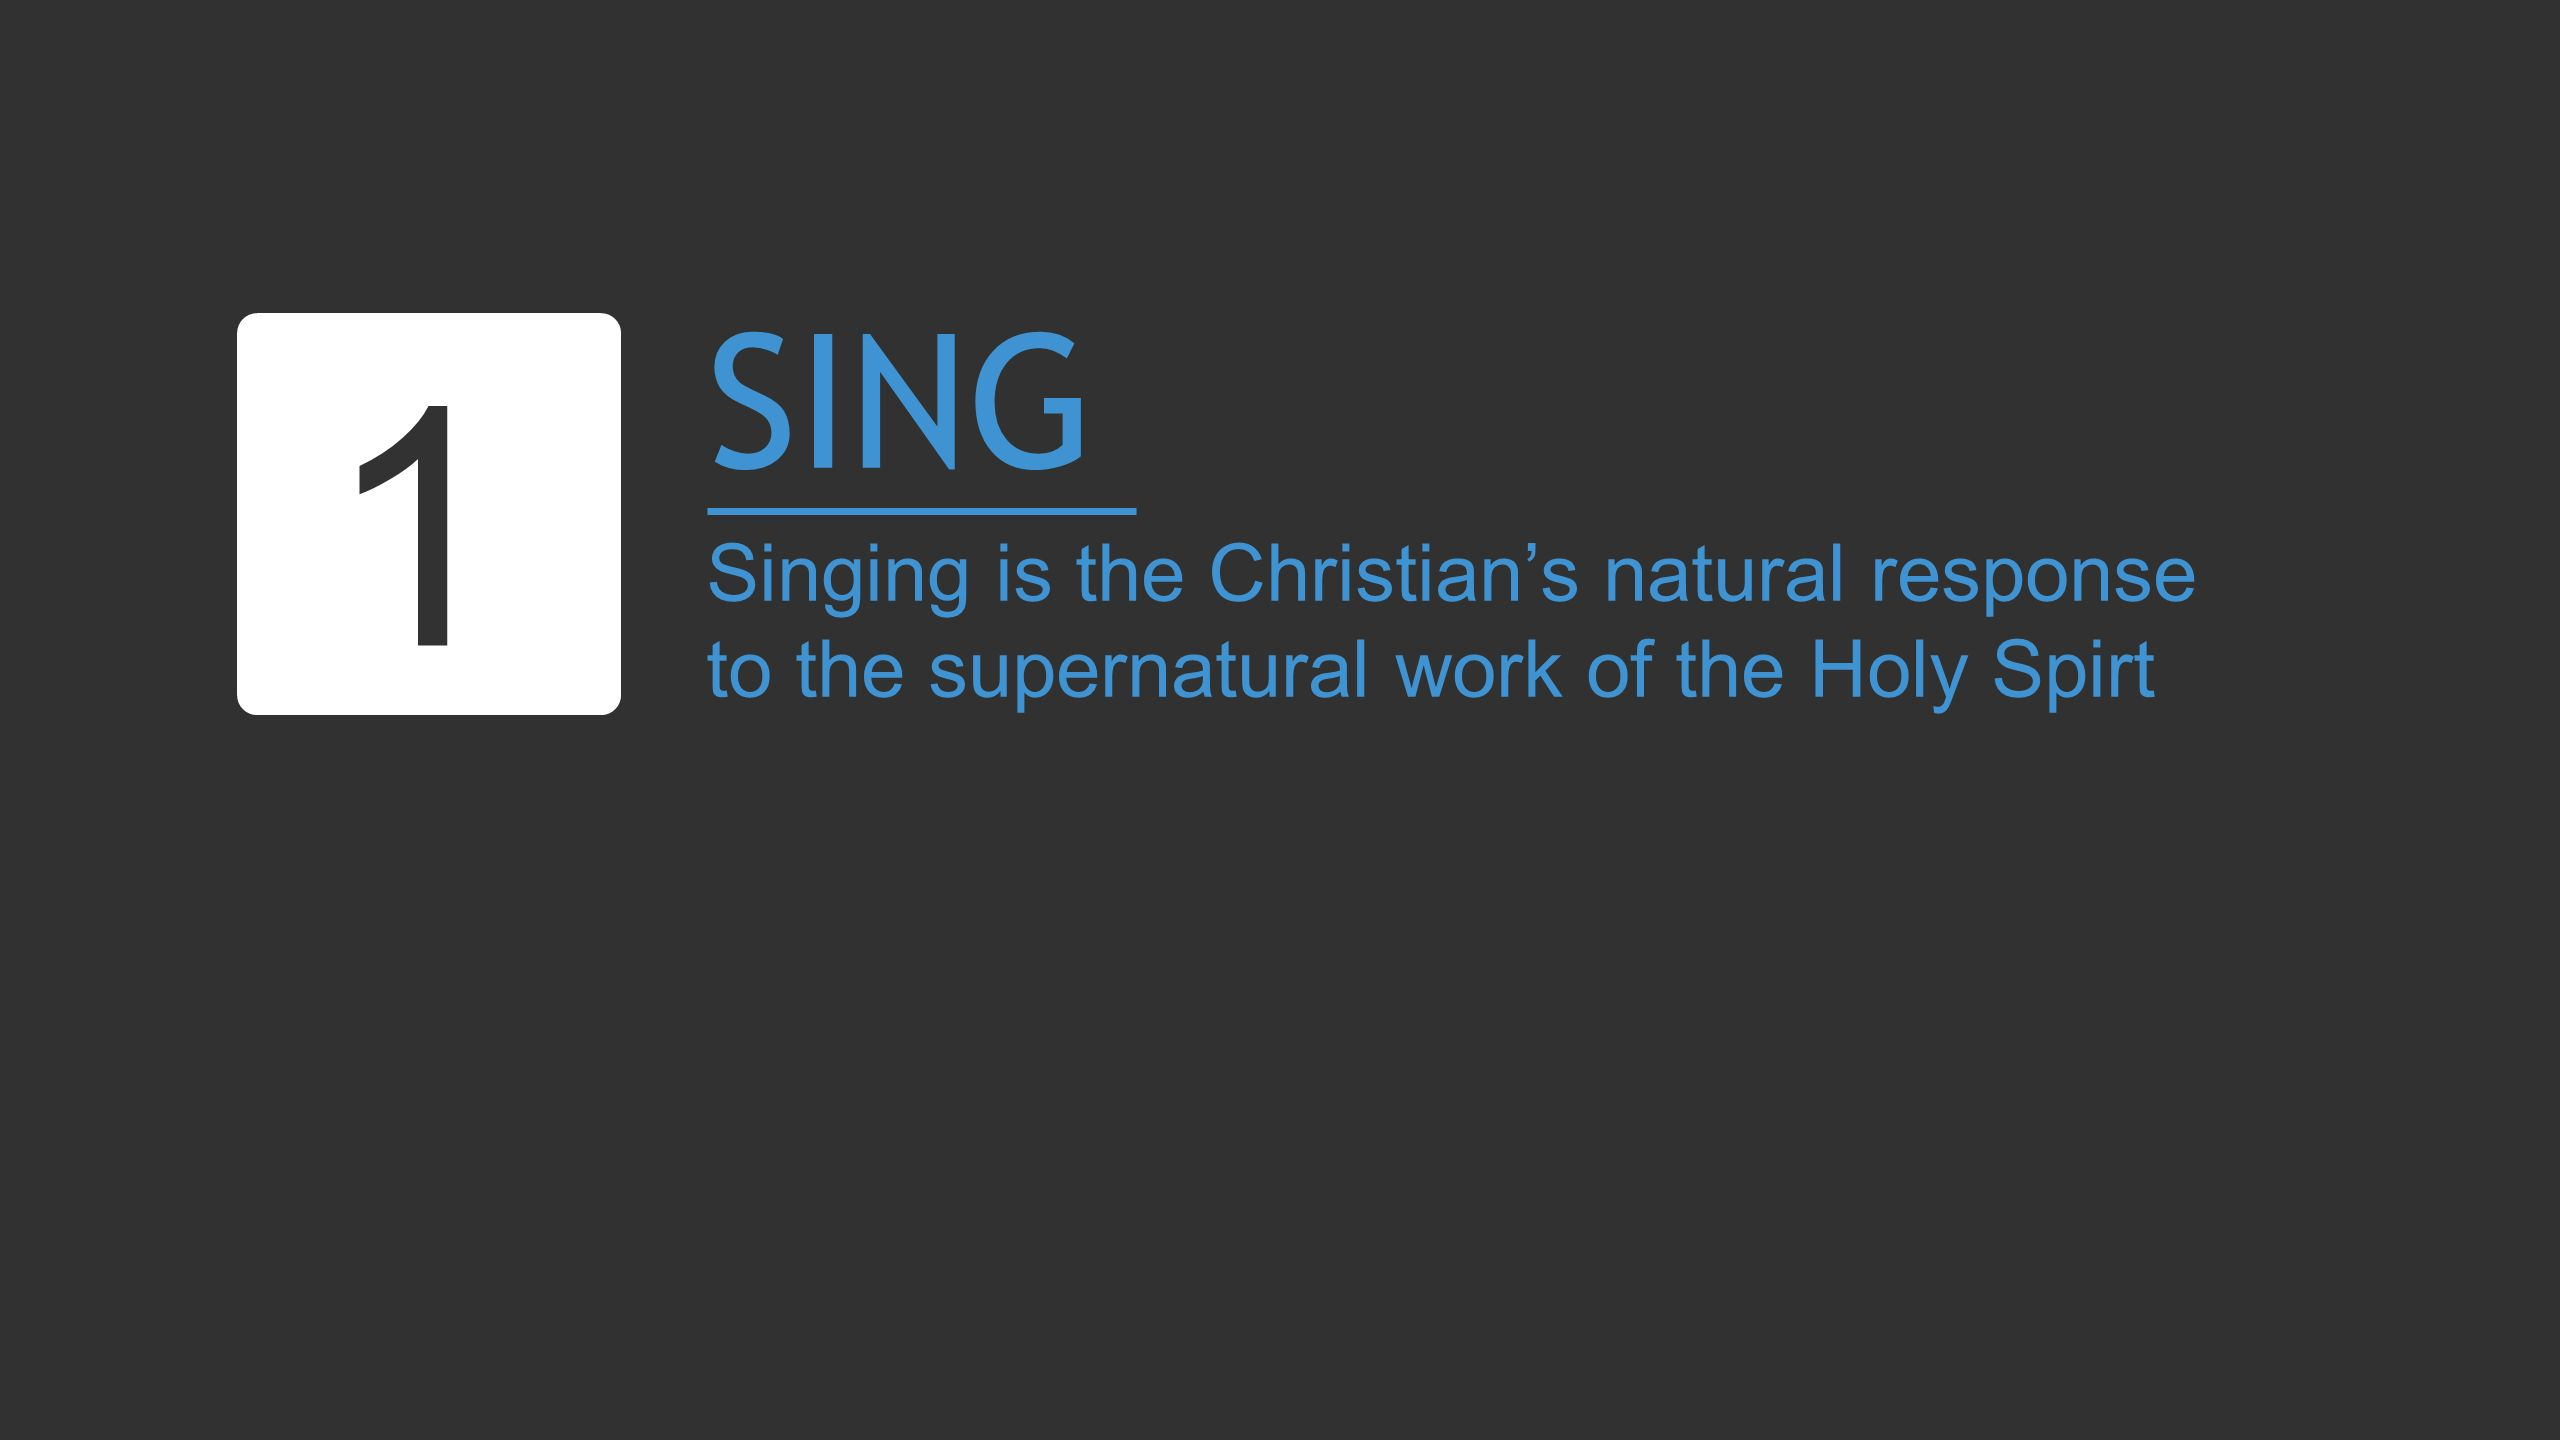 SING Singing is the Christians natural response to the supernatural work of the Holy Spirt 1